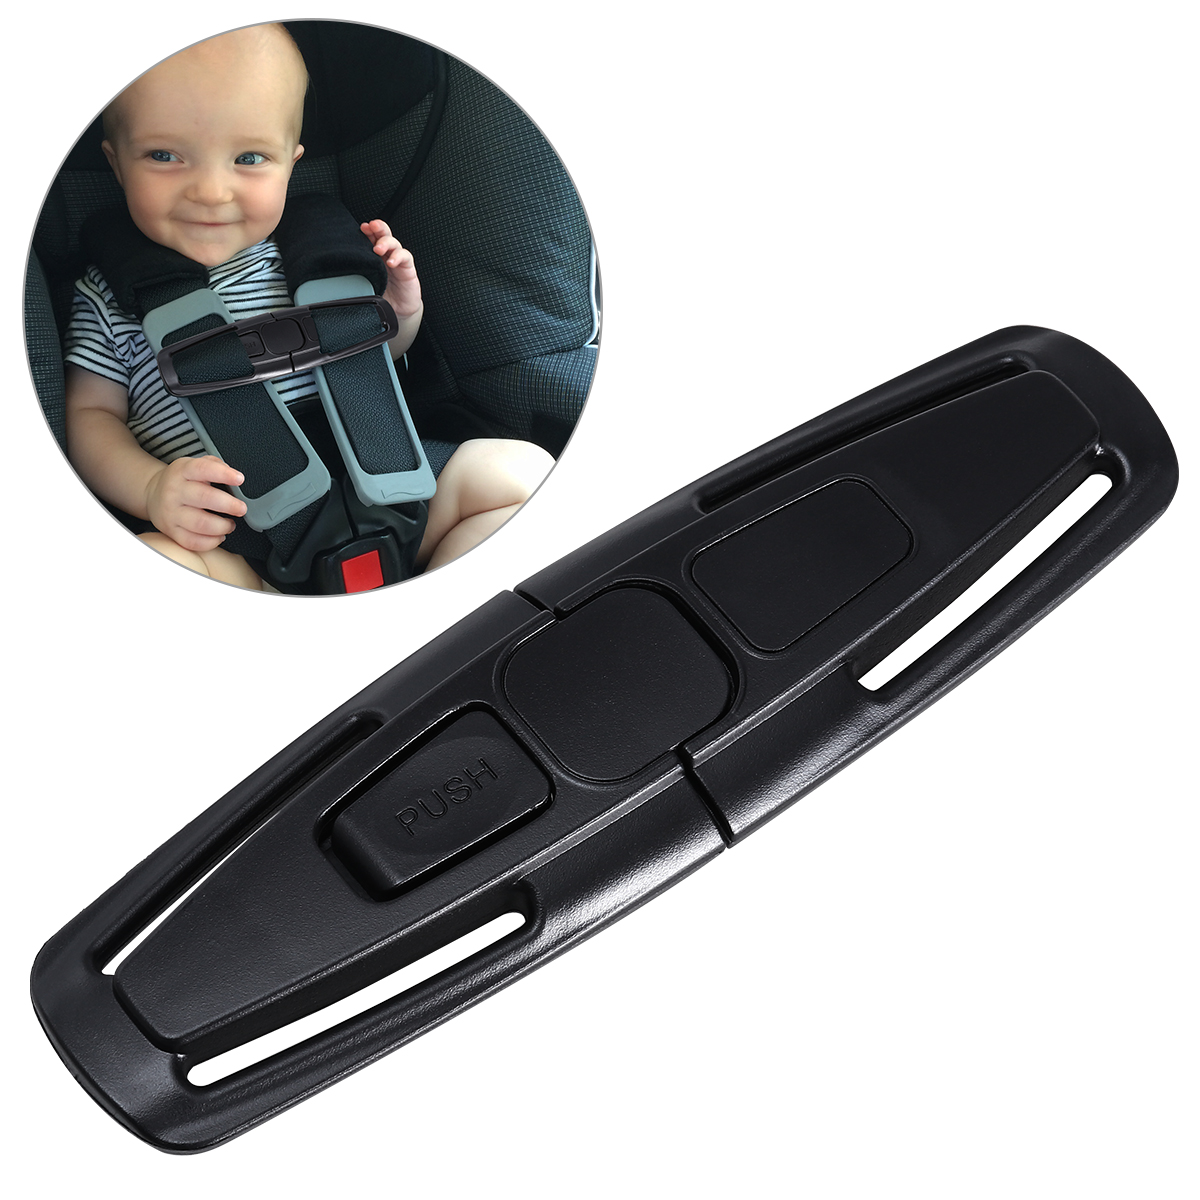 NUOLUX Car Safety Seat Strap Belt Harness Chest Clip Safe Buckle for Baby (Black)